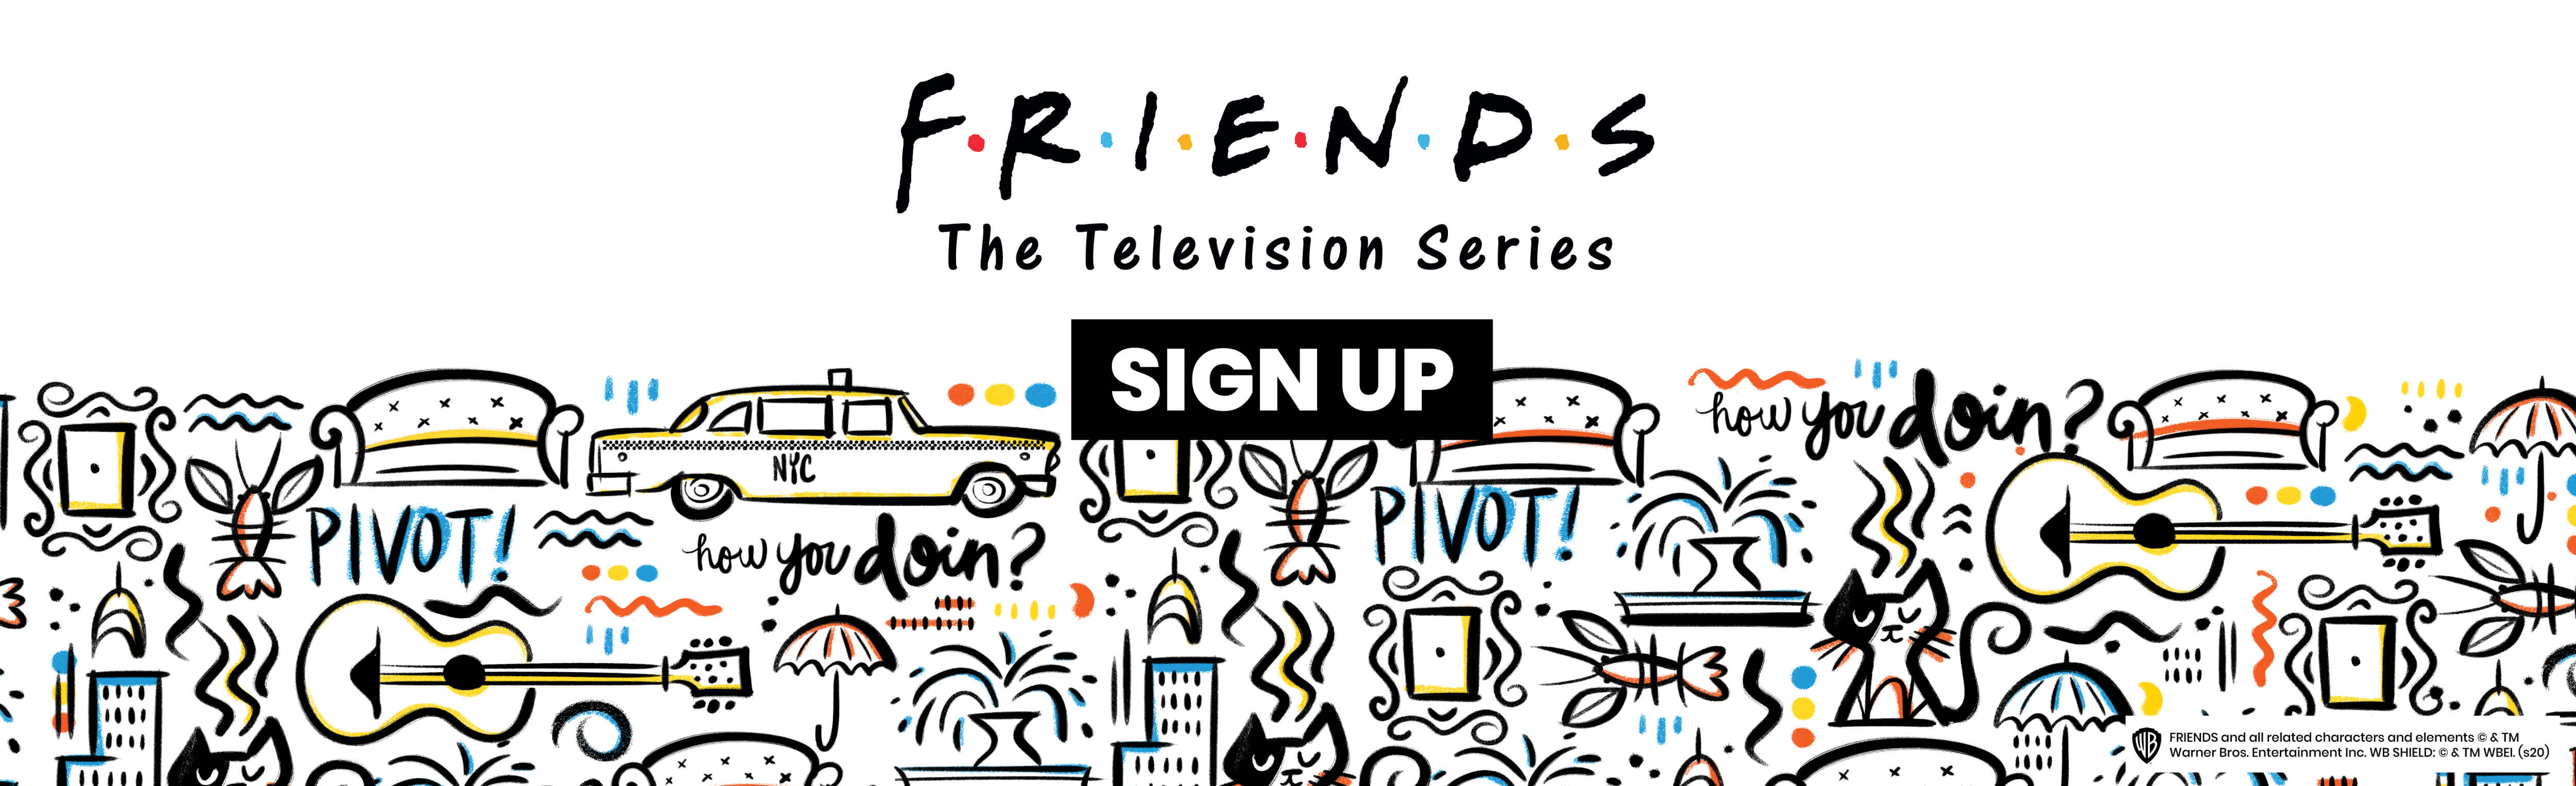 friends sign up